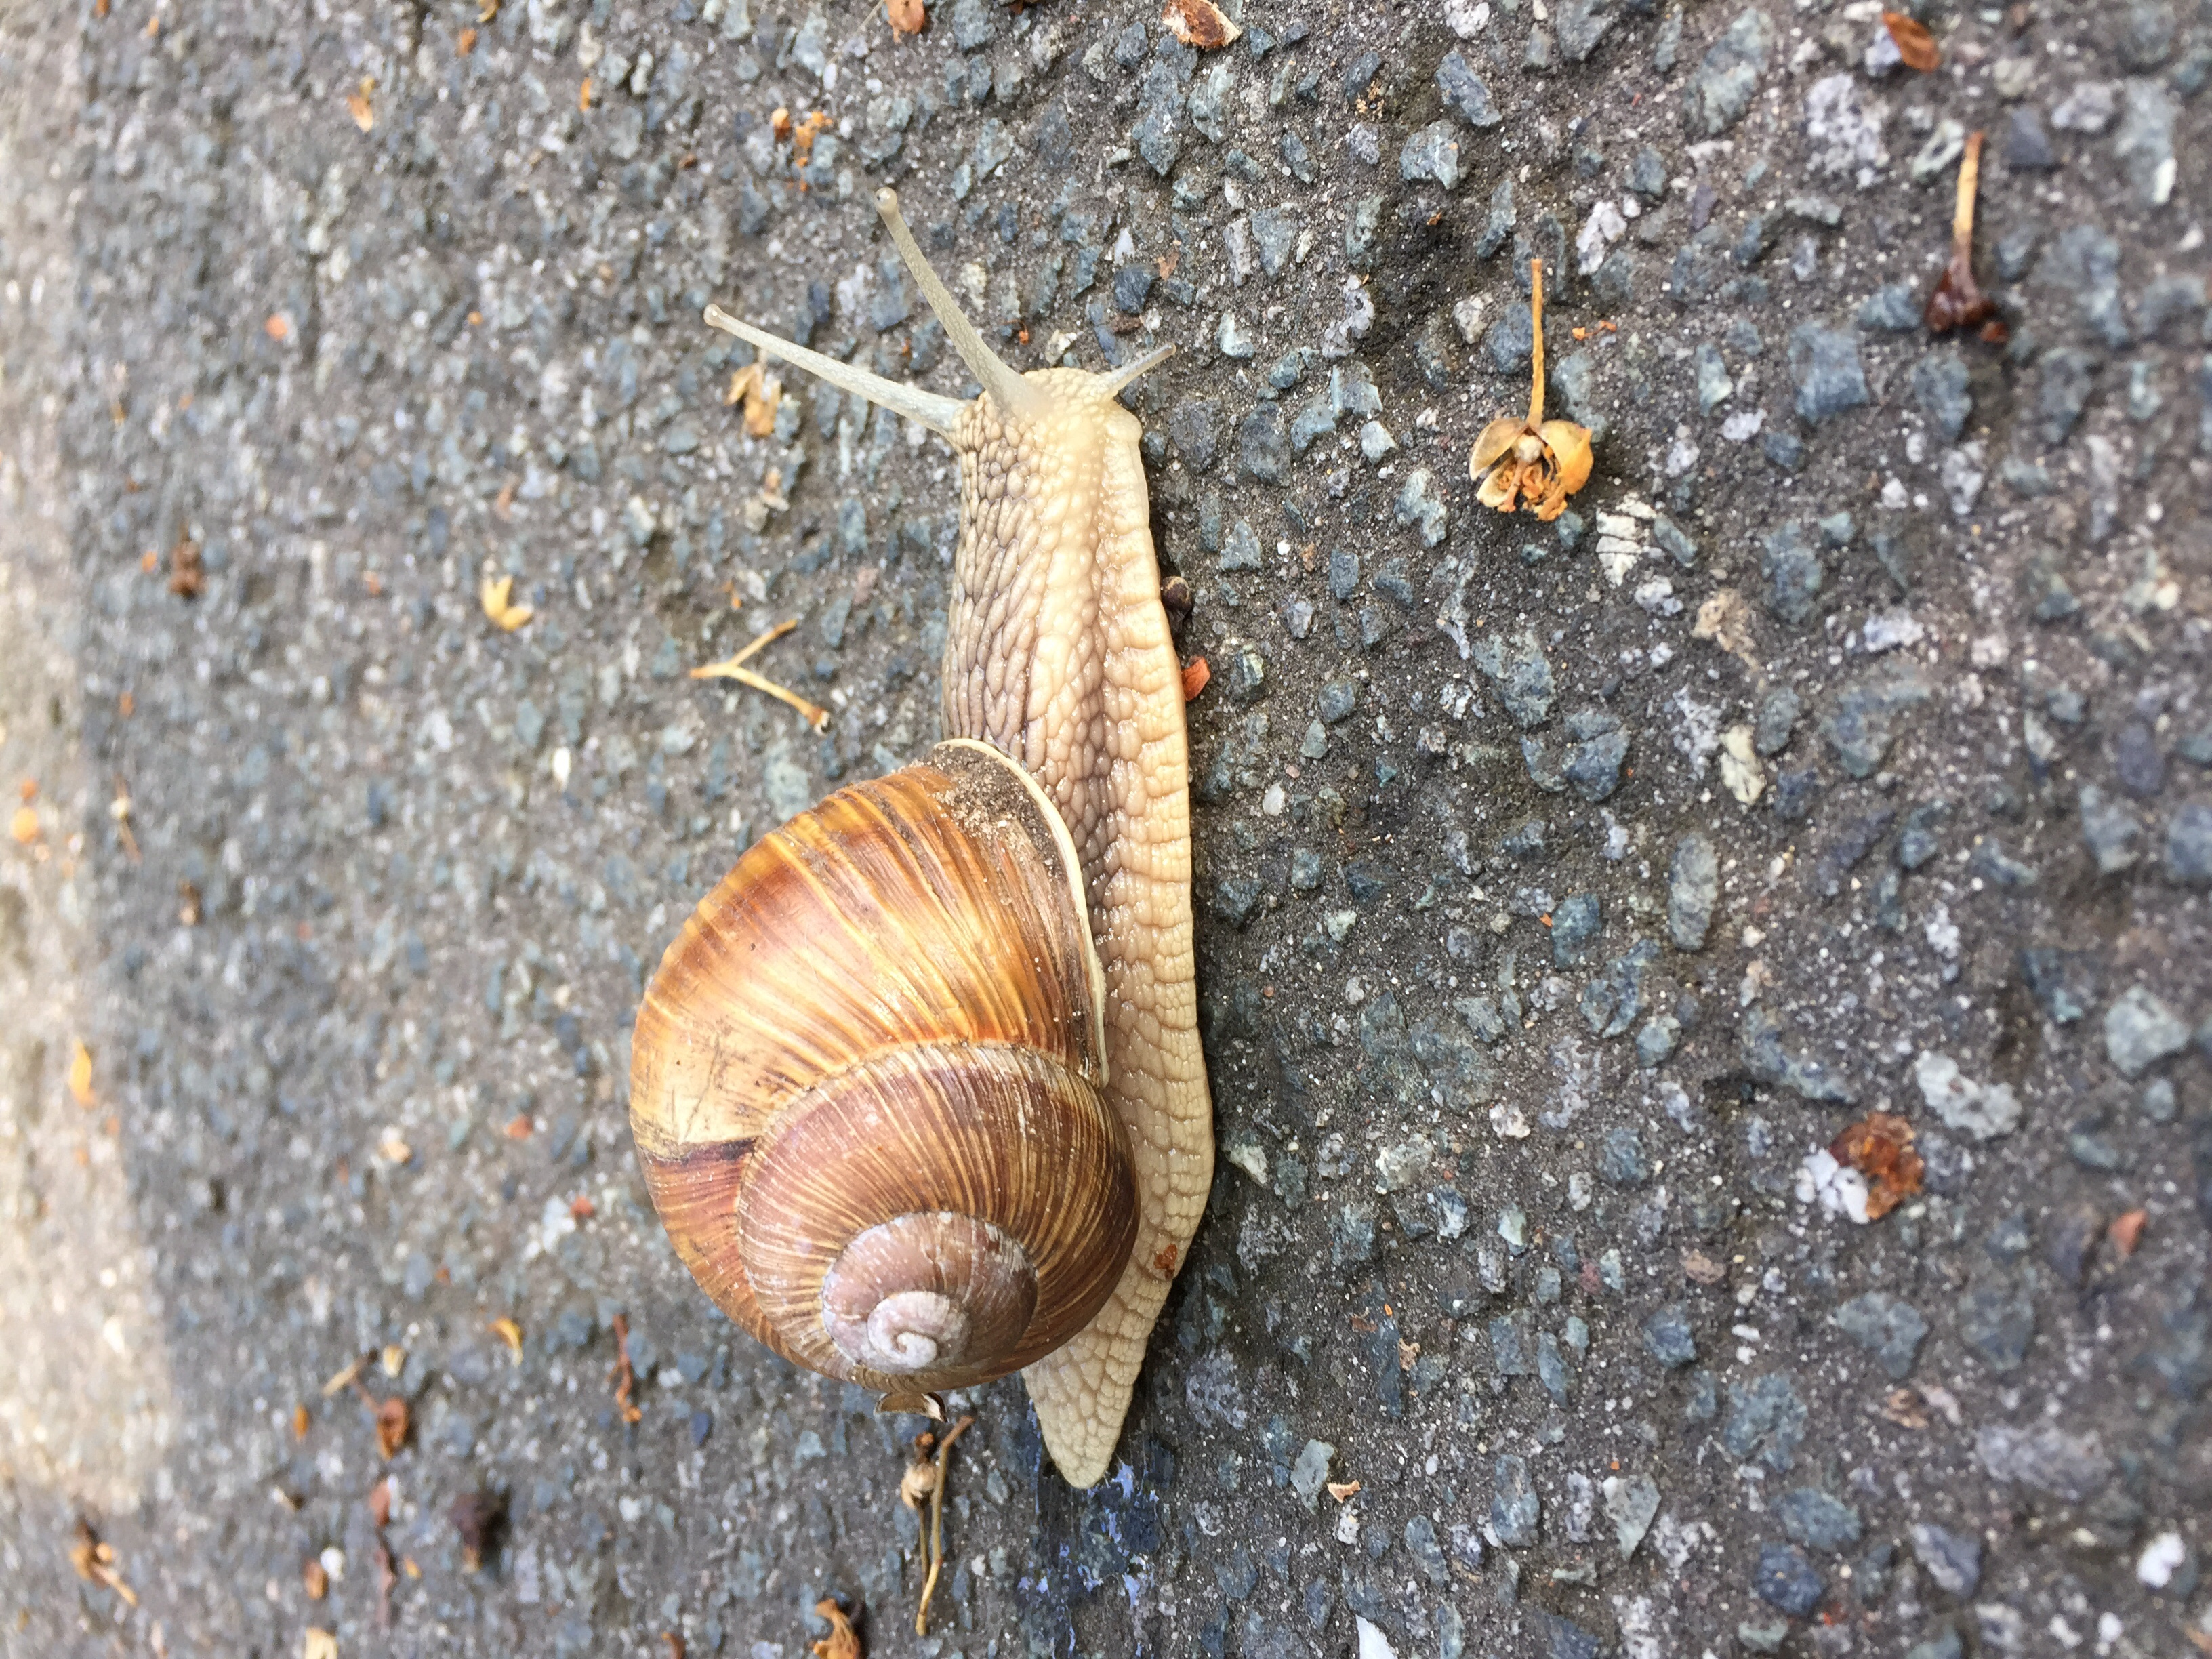 So many of these guys on the trail. And their cousins, the slug, stick to your bags - and stretch to 10x their body. Yuck!